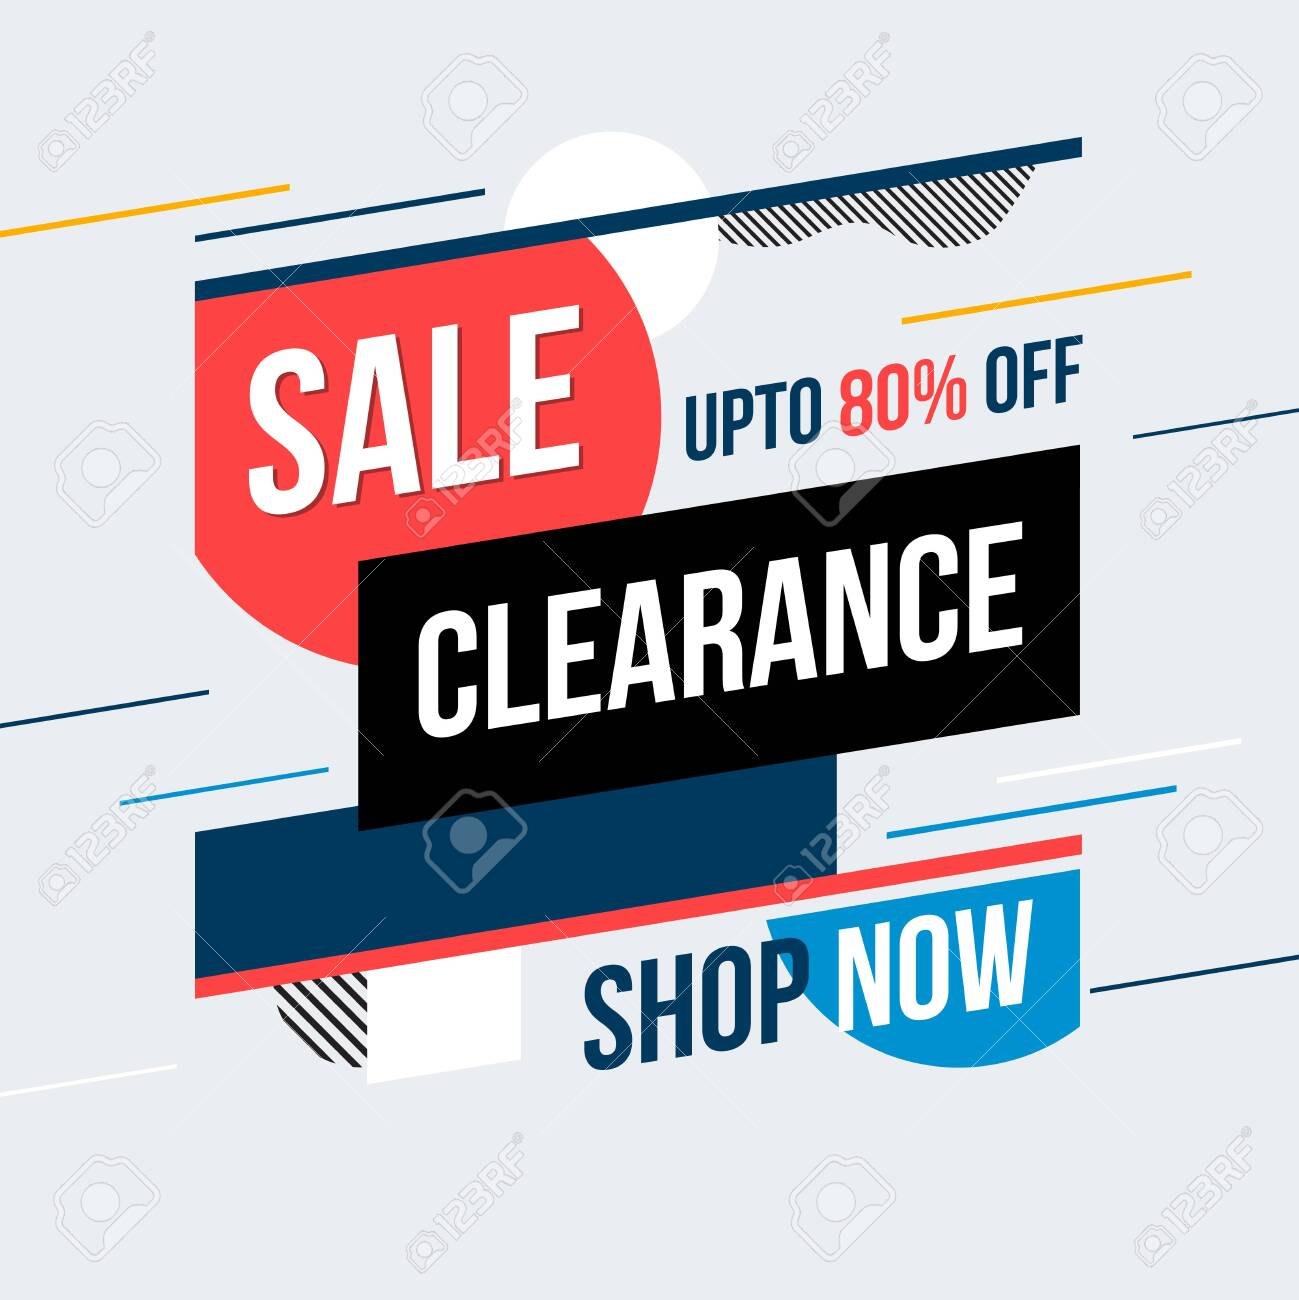 Sale clearance banner. Vector illustration. Concept advertising. - 126186890